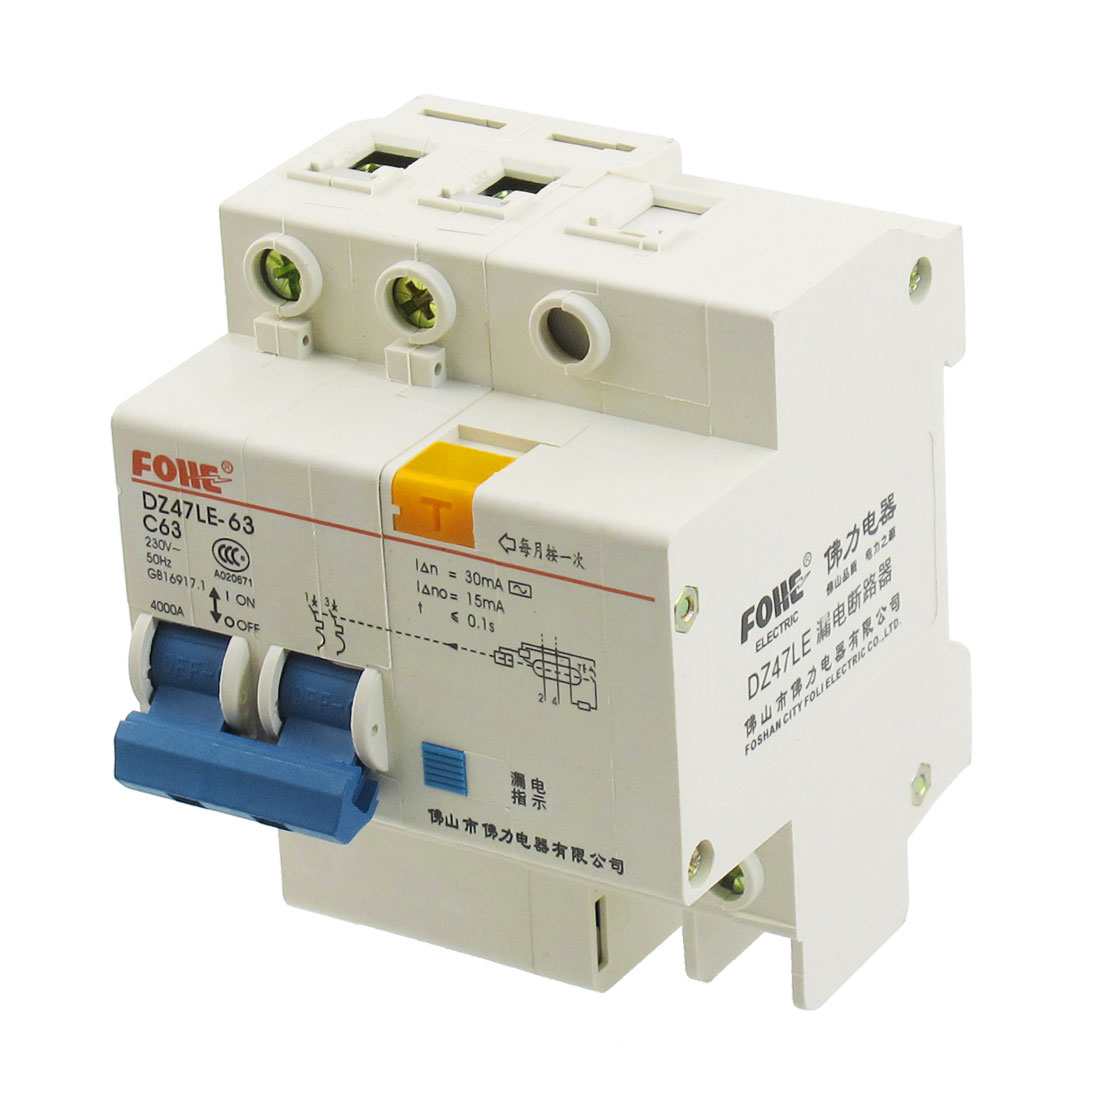 AC 230V 63A 2 Poles Overload Protection Earth Leakage Circuit Breaker 2P+N